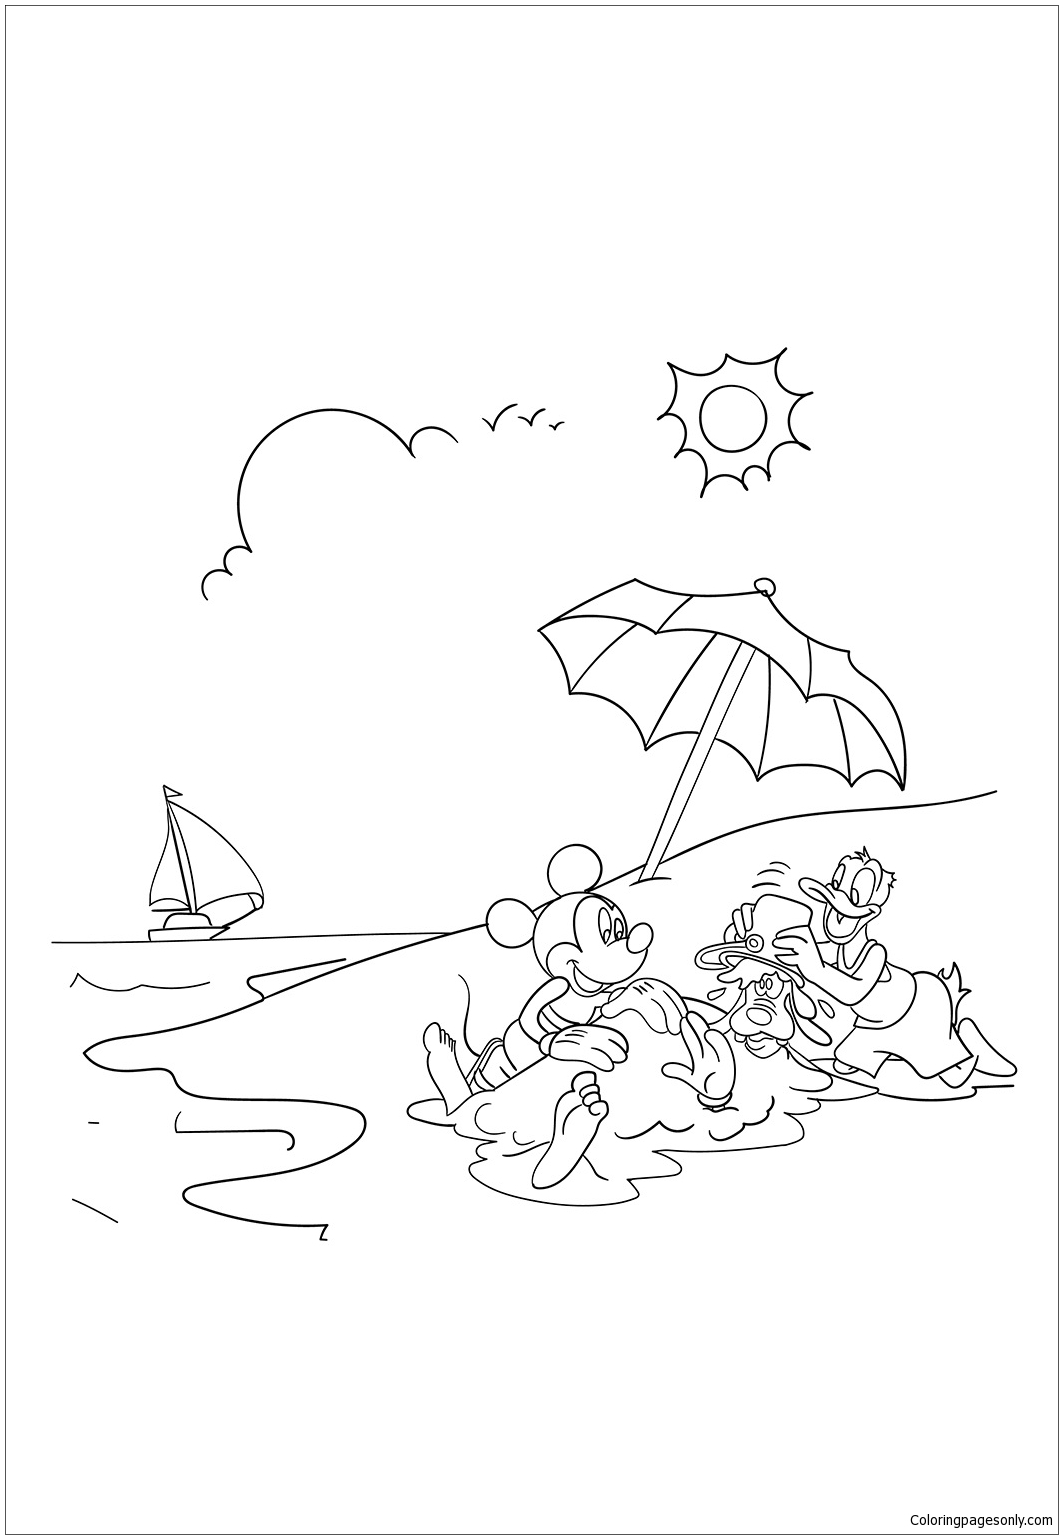 Mickey Mouse And Donald Duck Enjoying Summer Coloring Pages